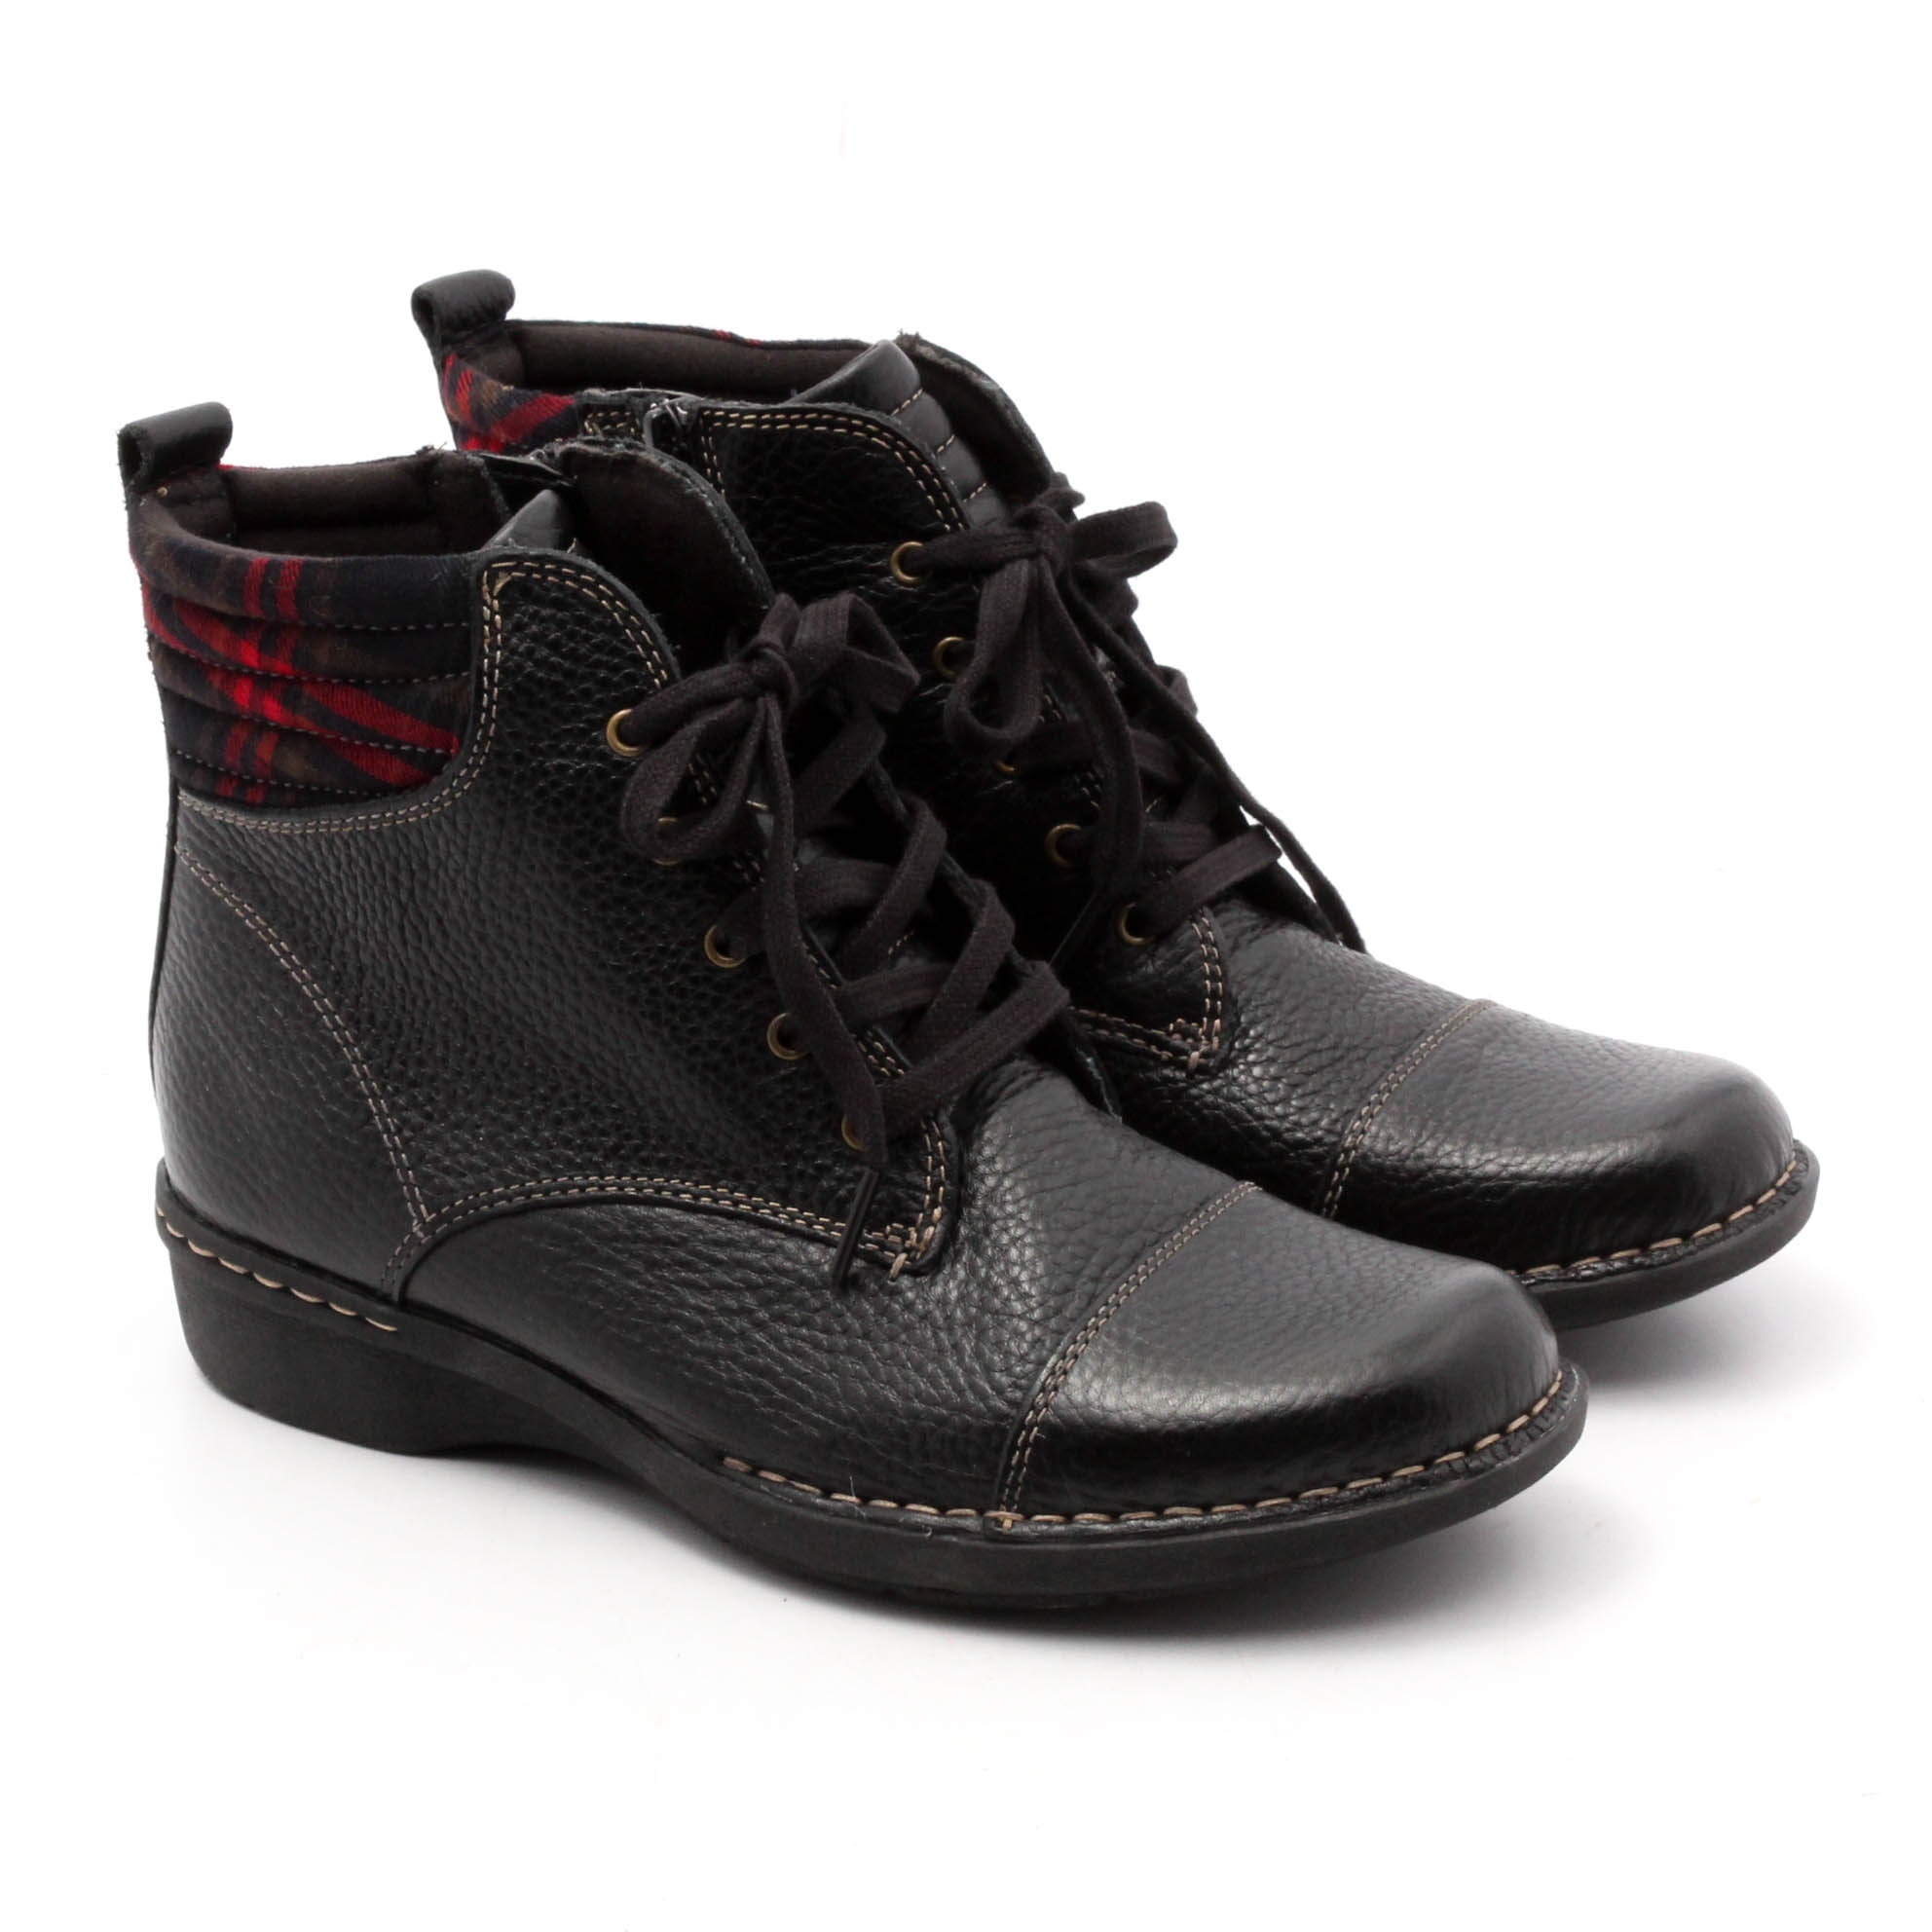 Women's Clarks Black Pebbled Leather Lace-Up Ankle Boots